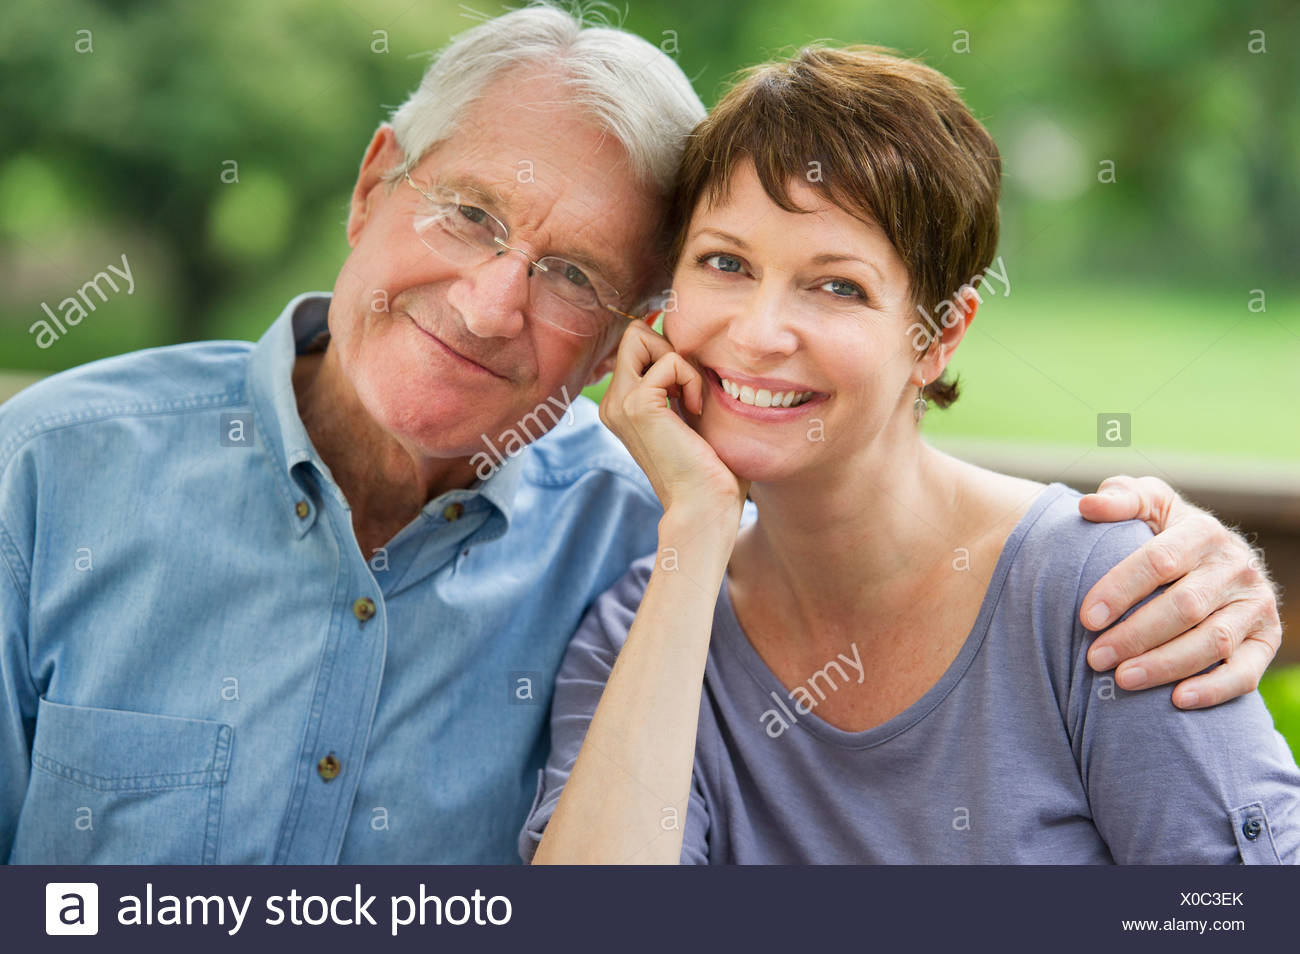 USA, New York State, Old Westbury, Portrait of father and adult daughter - Stock Image